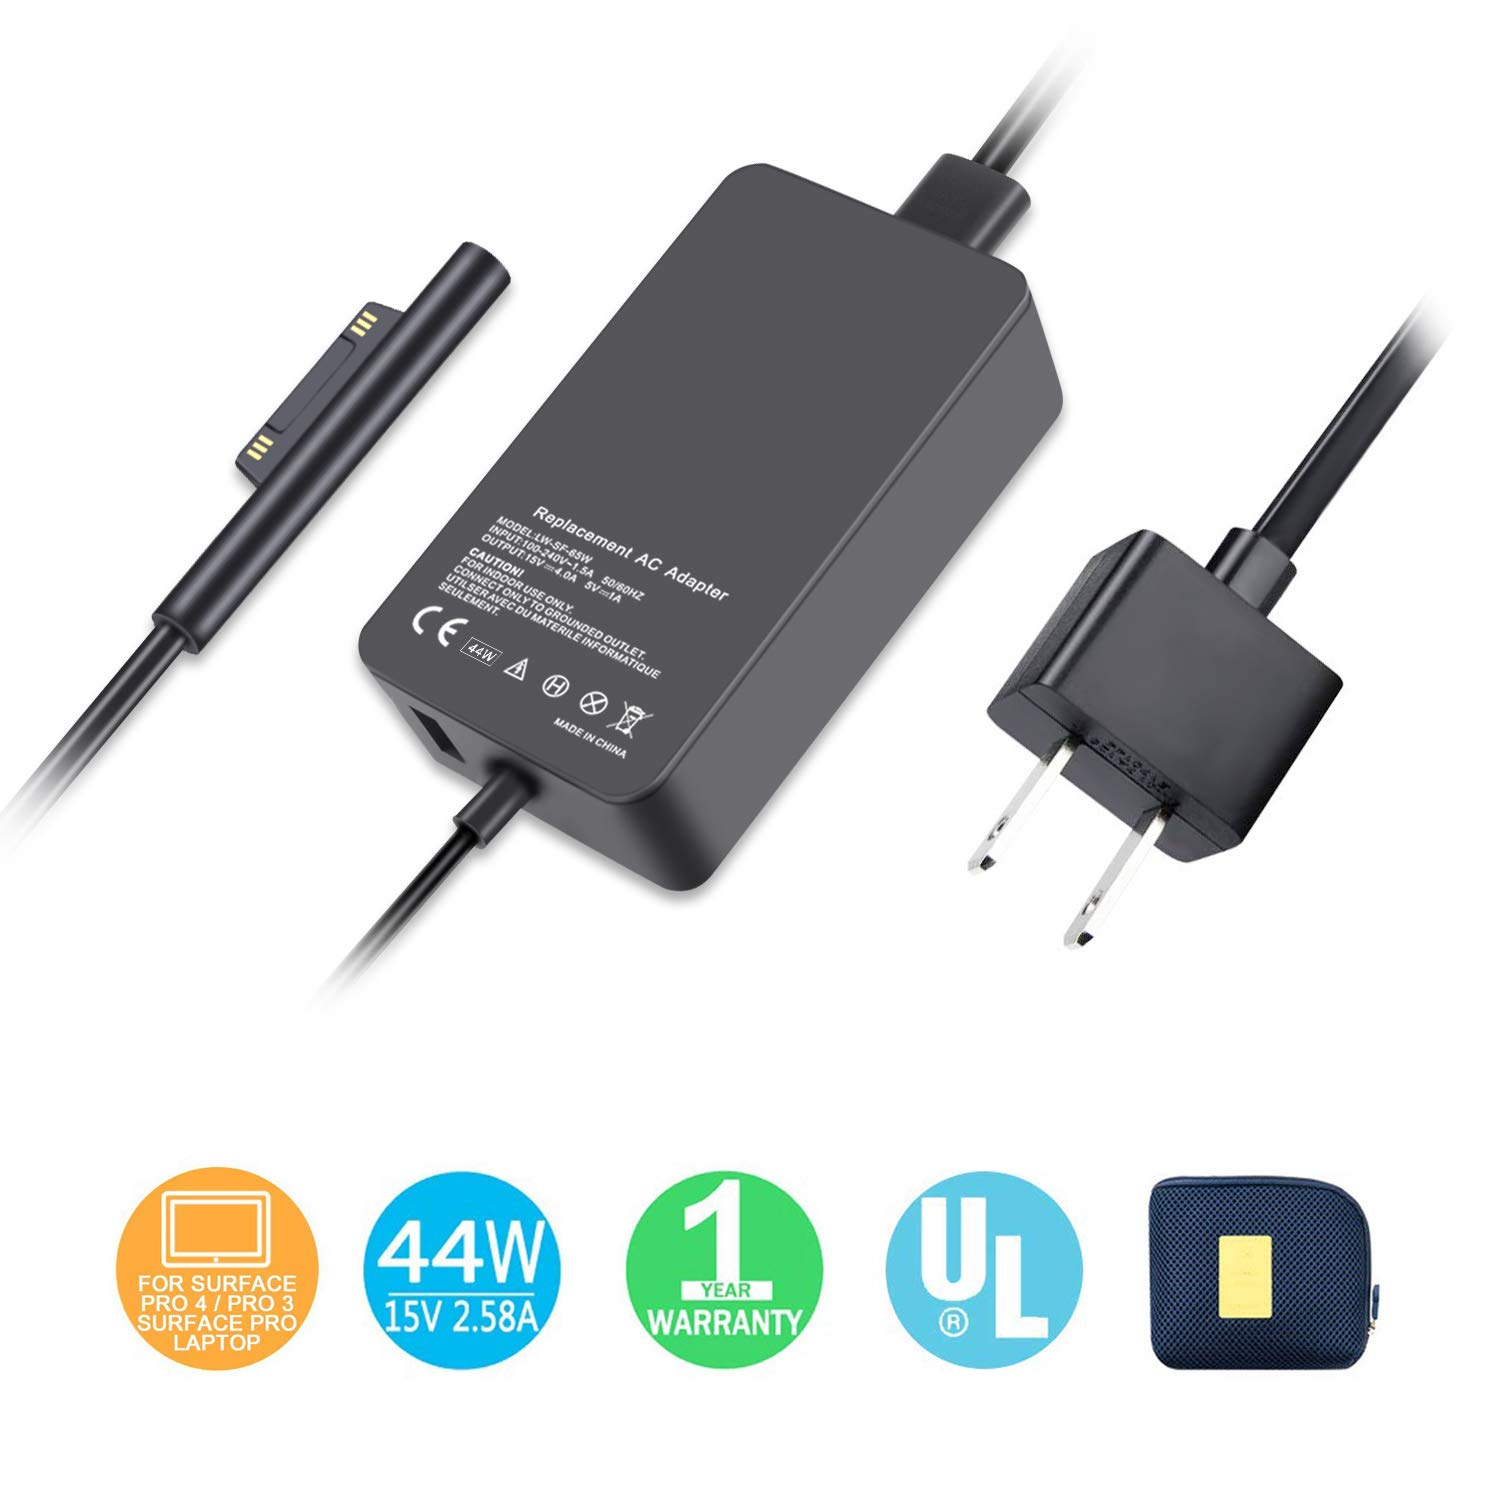 amazon com surface charger 44w power supply compatible for rh amazon com